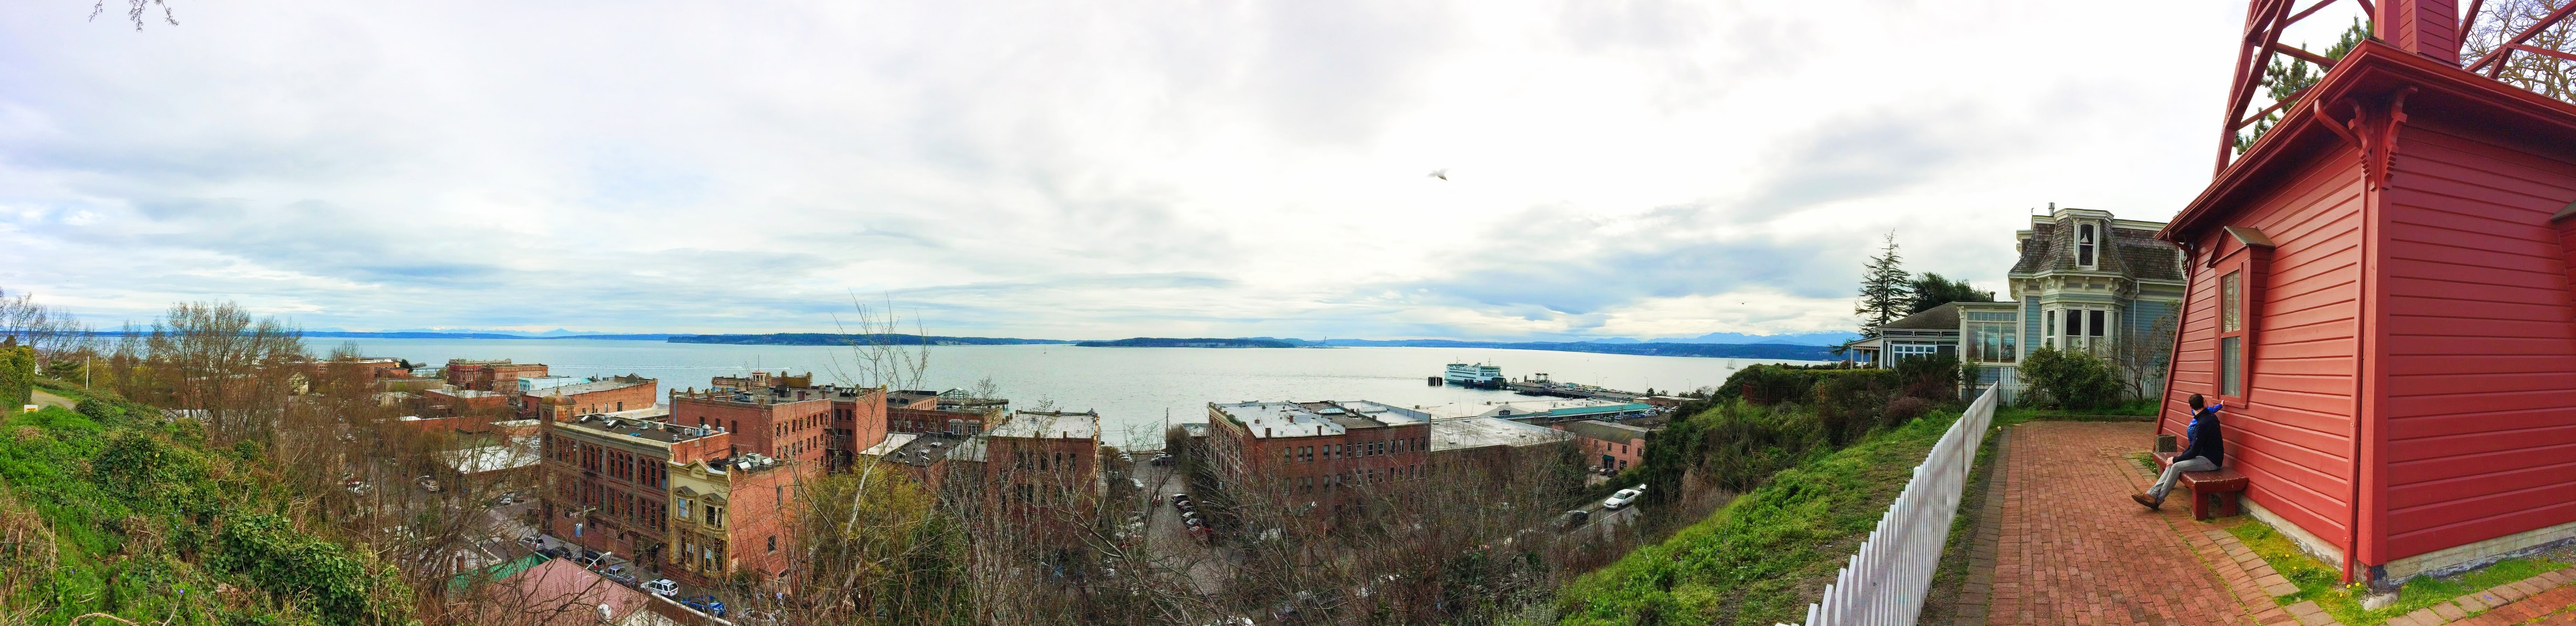 Panoramic View of Port Townsend from Uptown Belltower 1